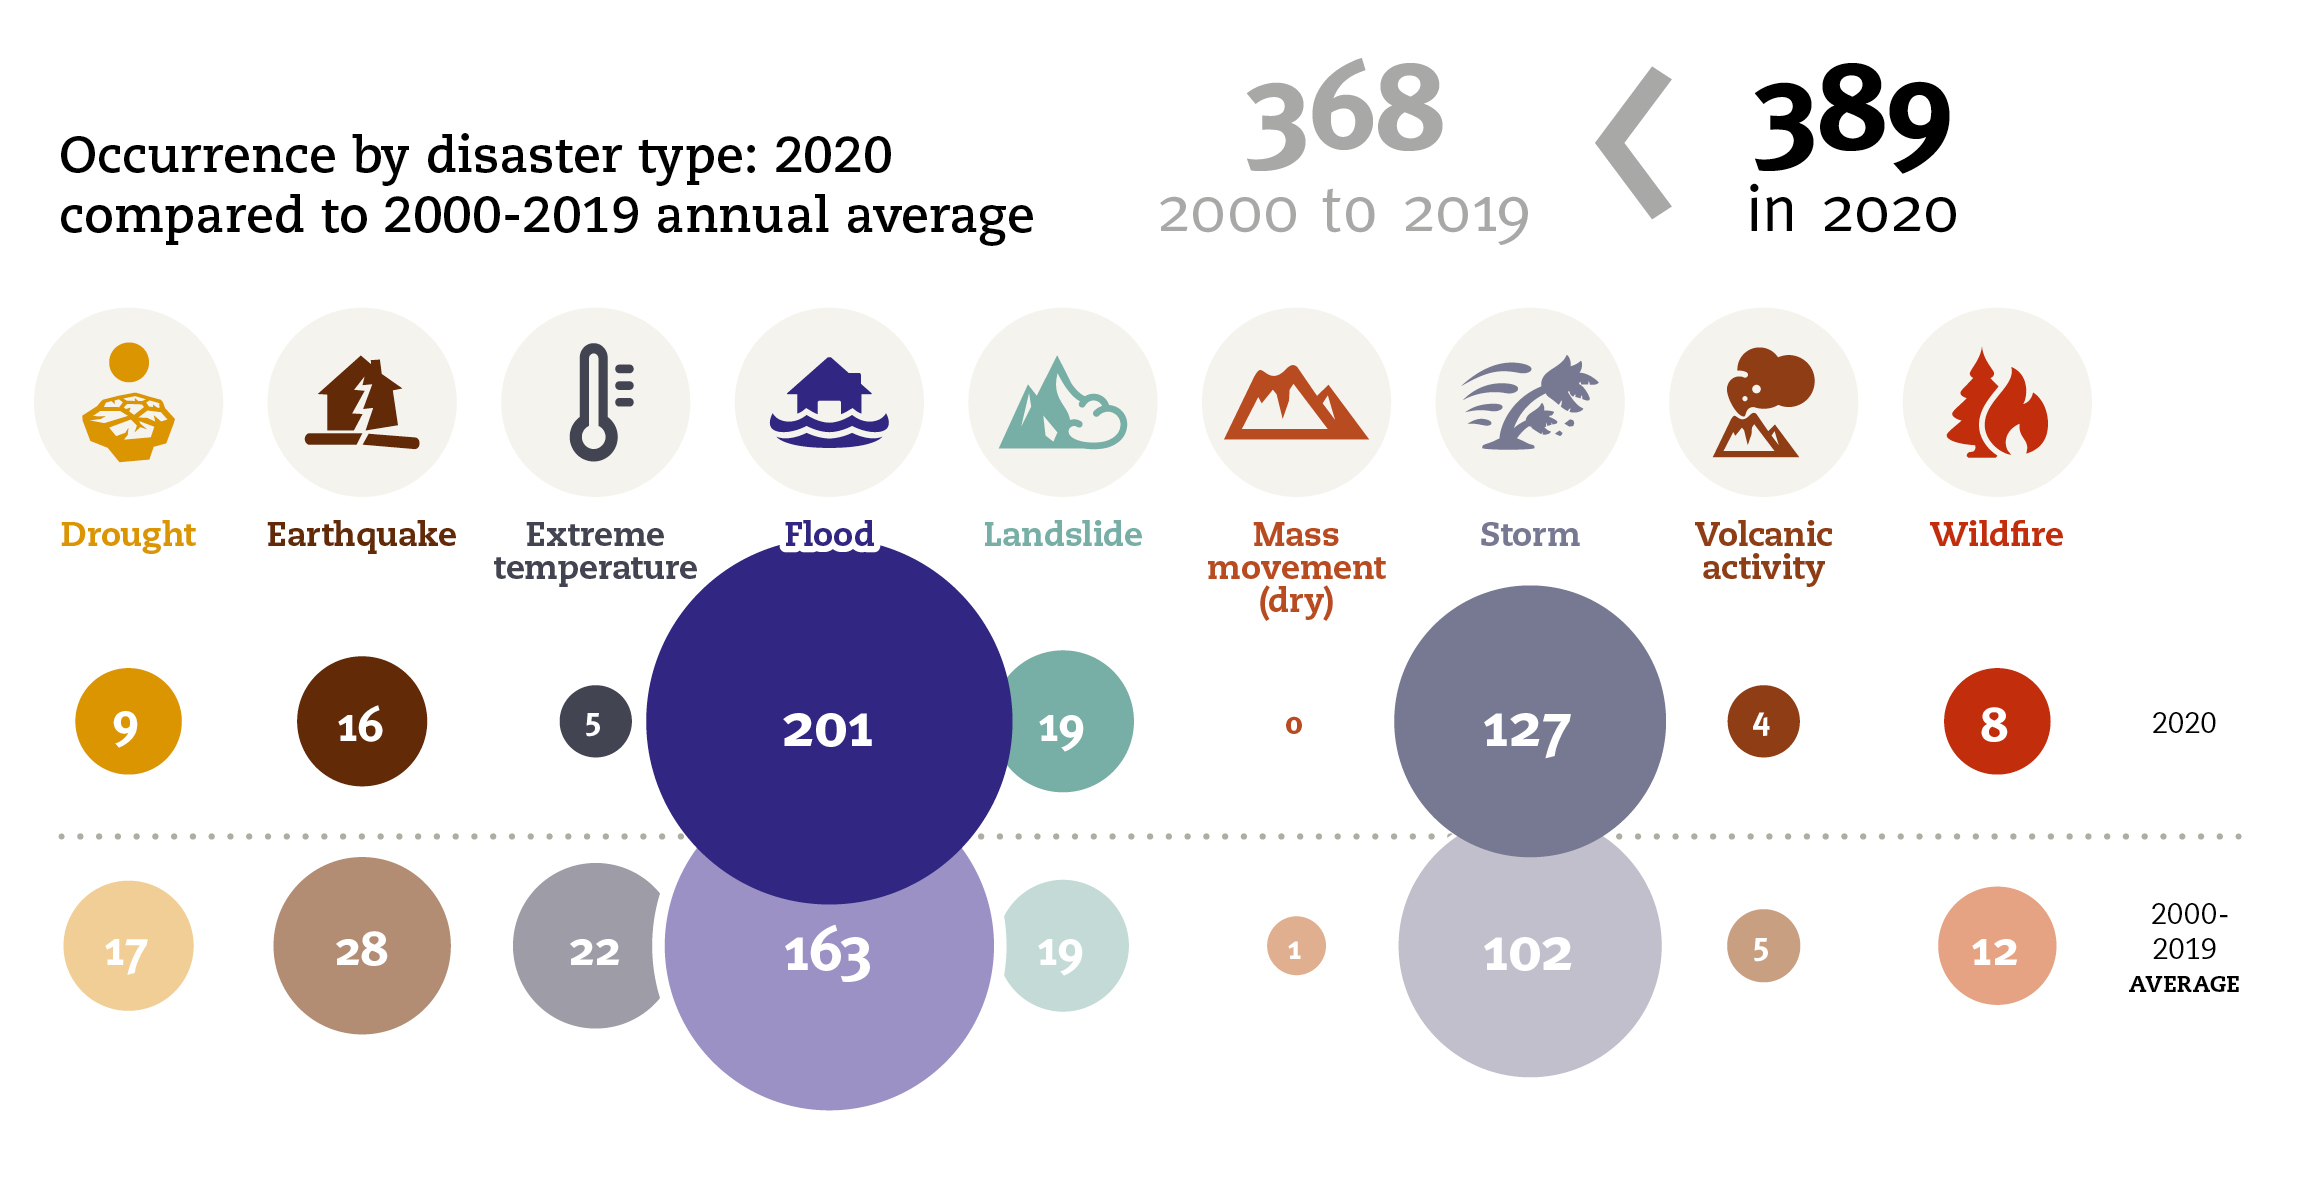 Non-COVID disaster trends in 2020